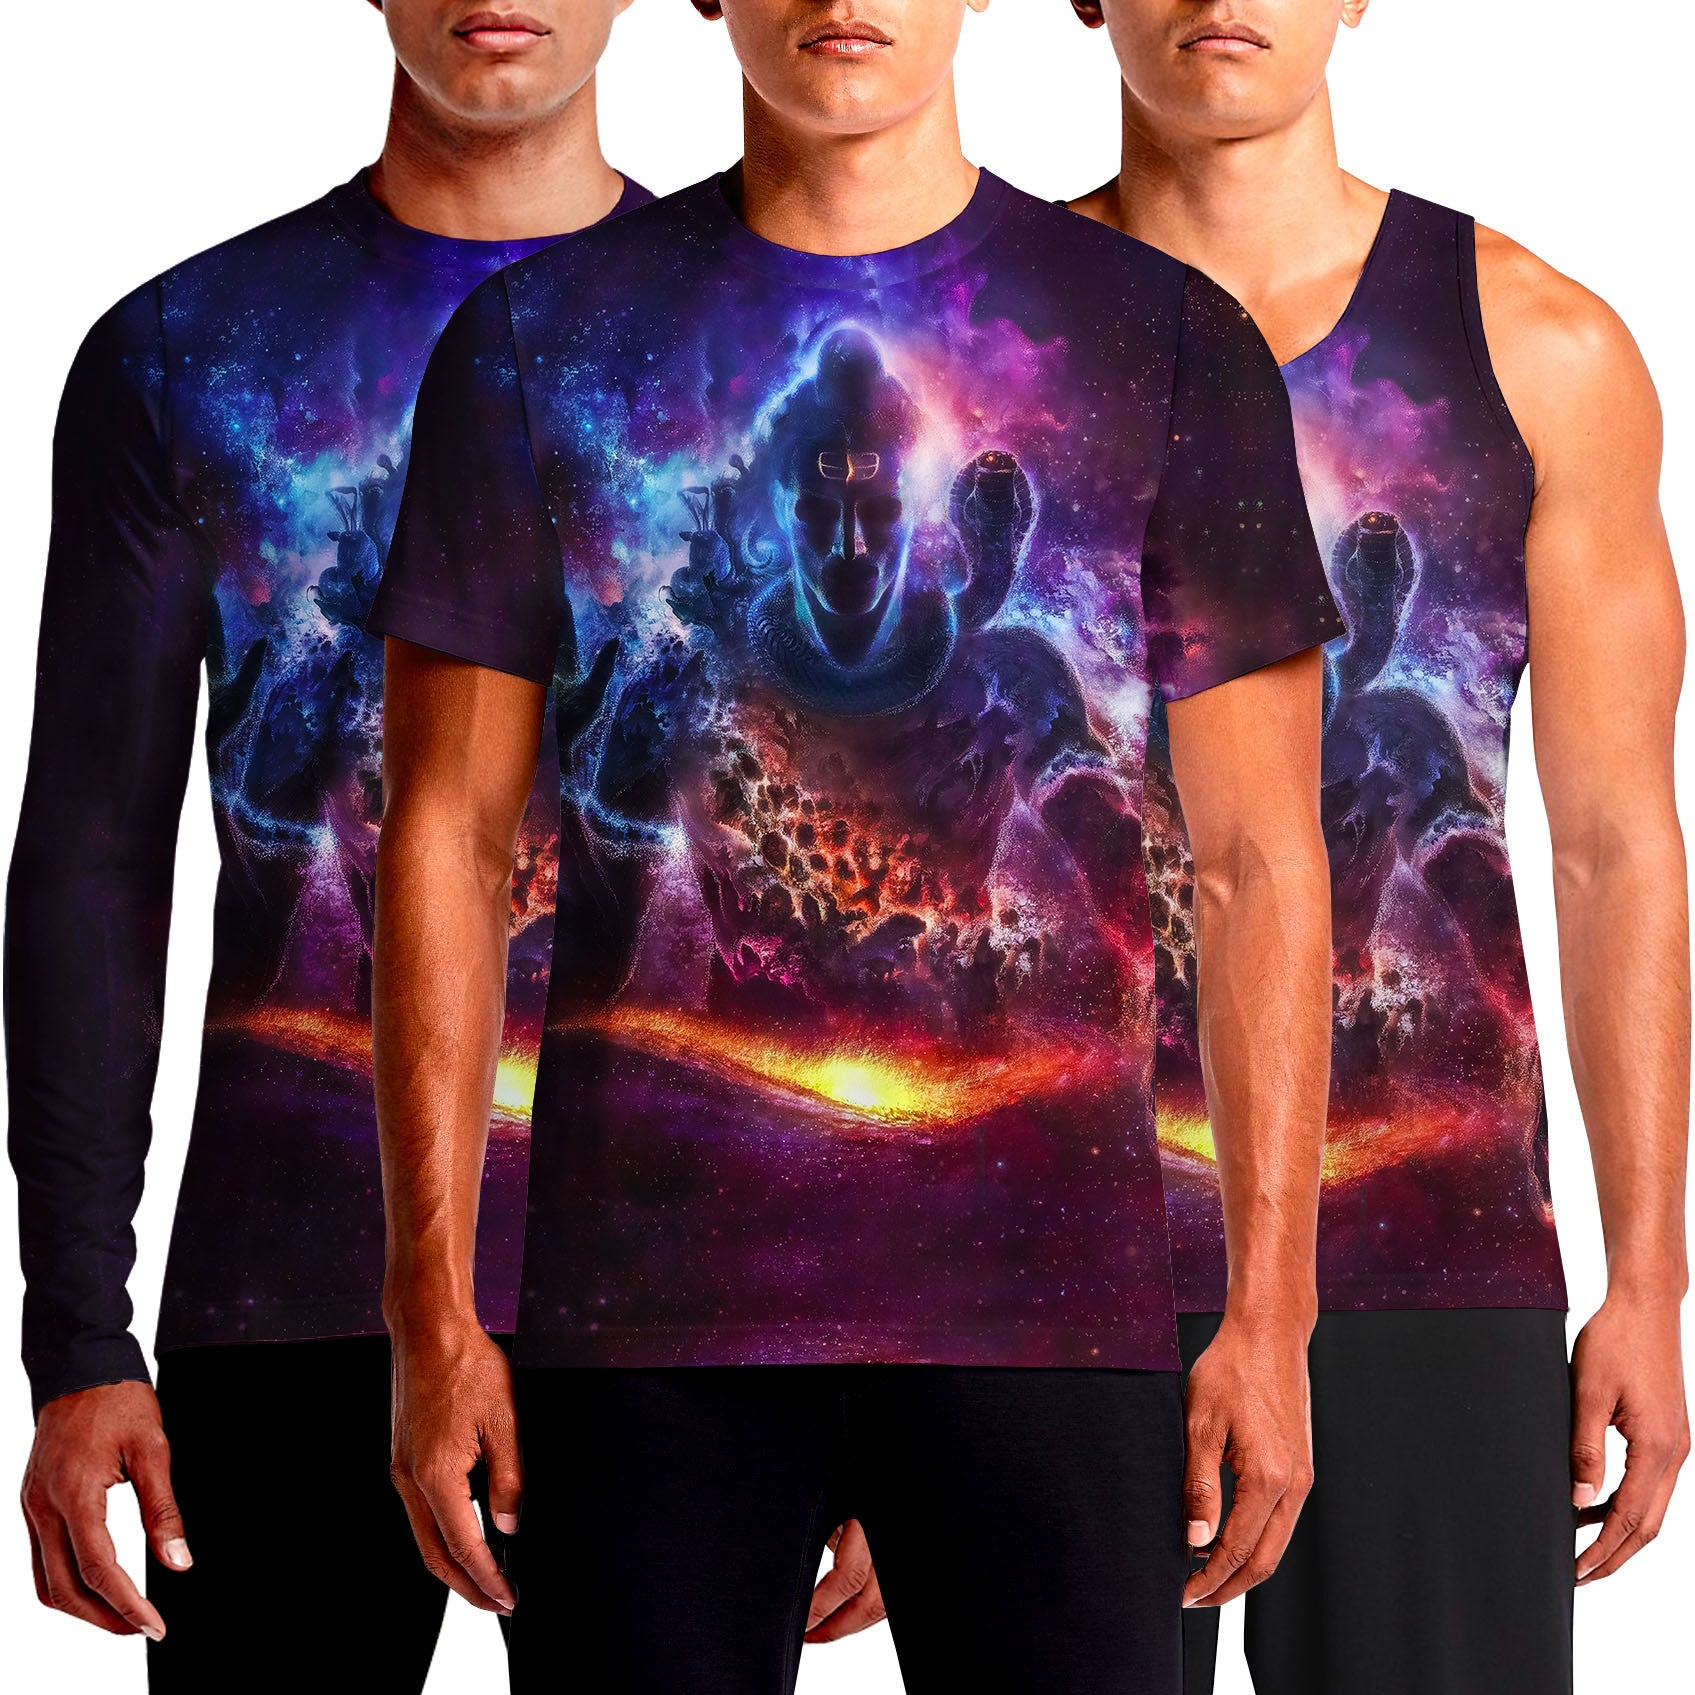 Design your own t shirt delhi